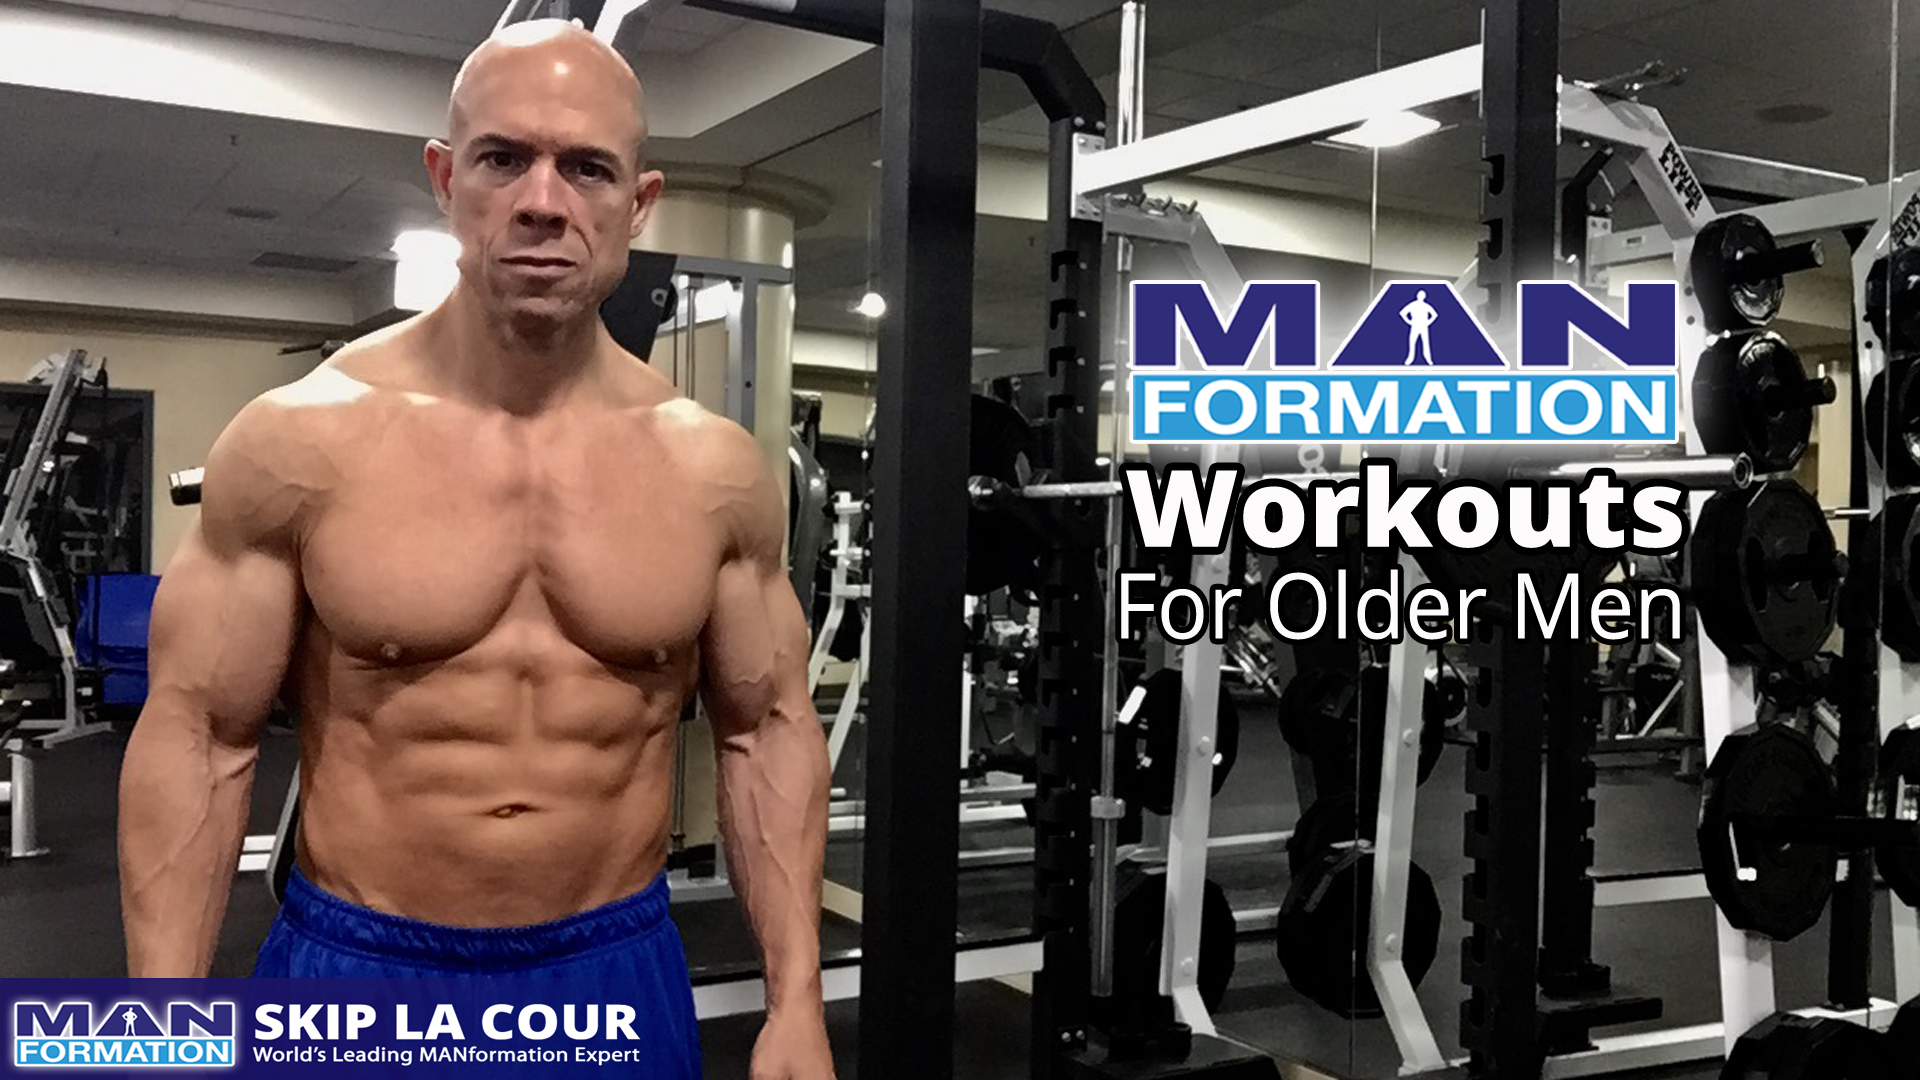 manformation workouts for older men How Many Sets, Reps and Exercises Per Workout?   Workouts For Older Men